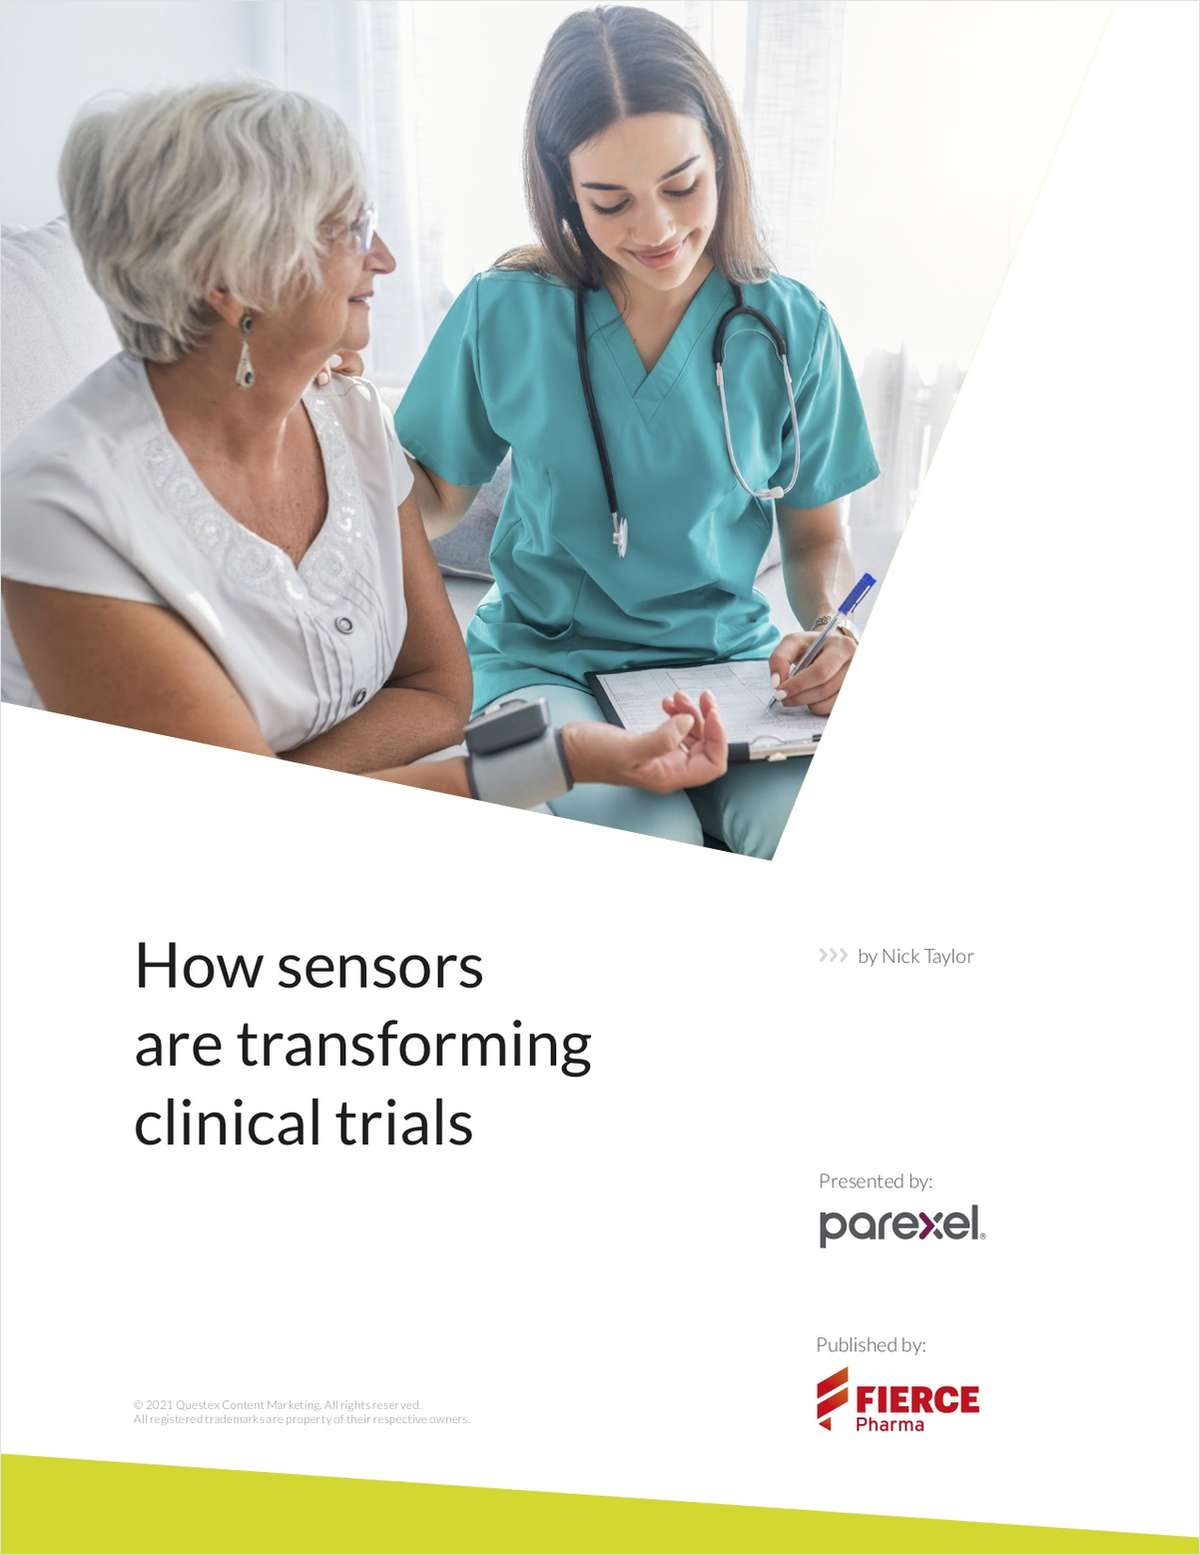 How sensors are transforming clinical trials